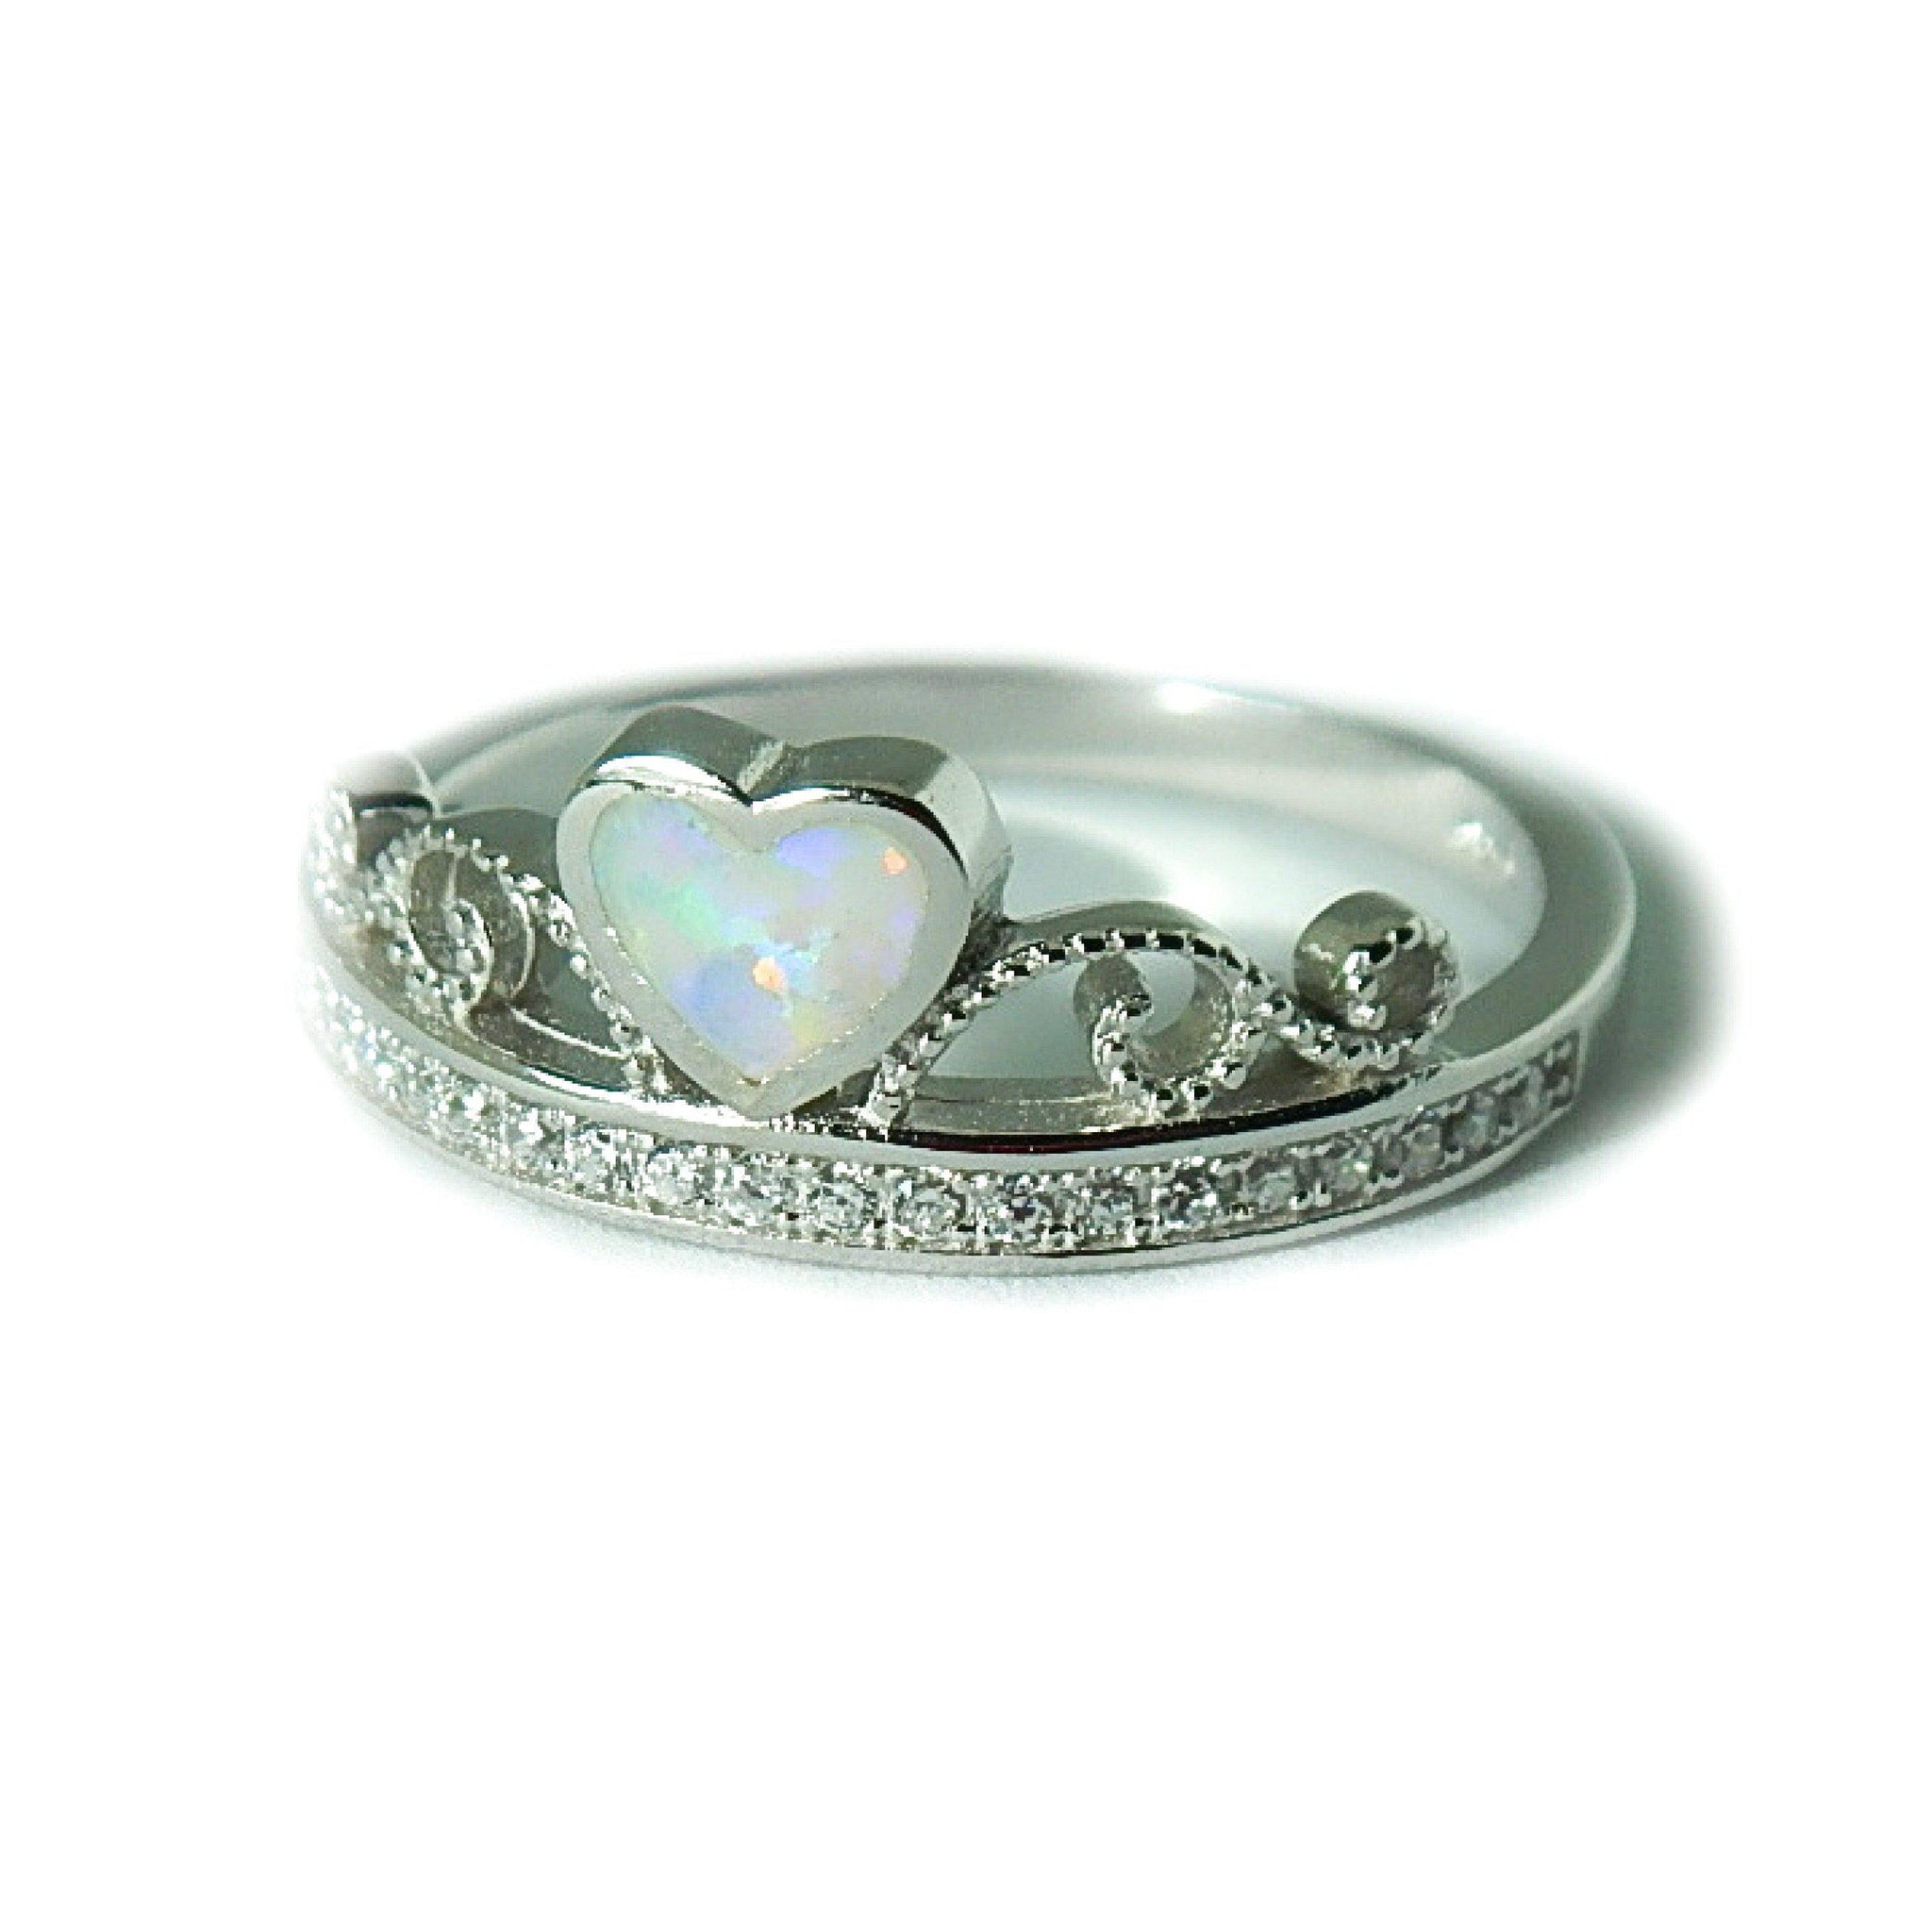 3ce65669beea5 Opal Rings: Genuine Fire, White, Blue Opals & More | Journeys Jewelry